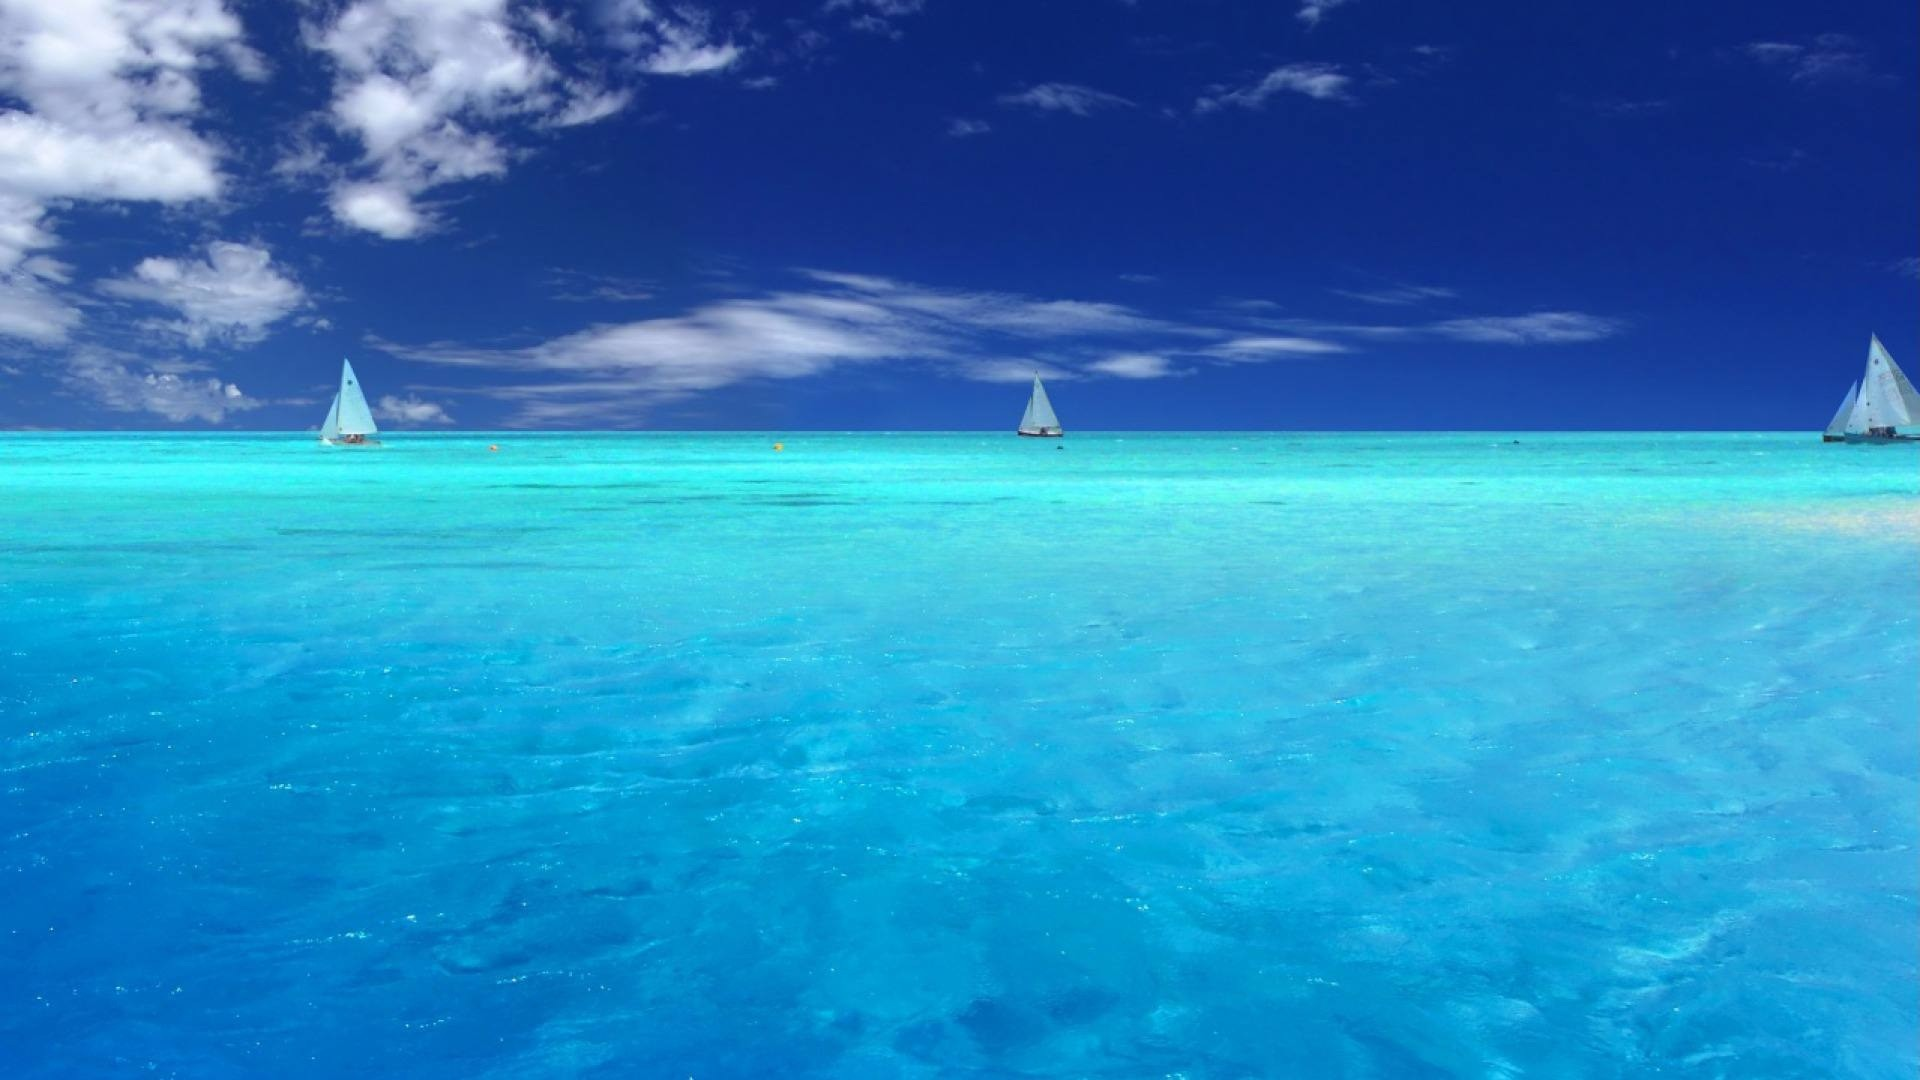 Res: 1920x1080, crystal free ocean wallpapers desktopnexus 58d f9b abf4a6